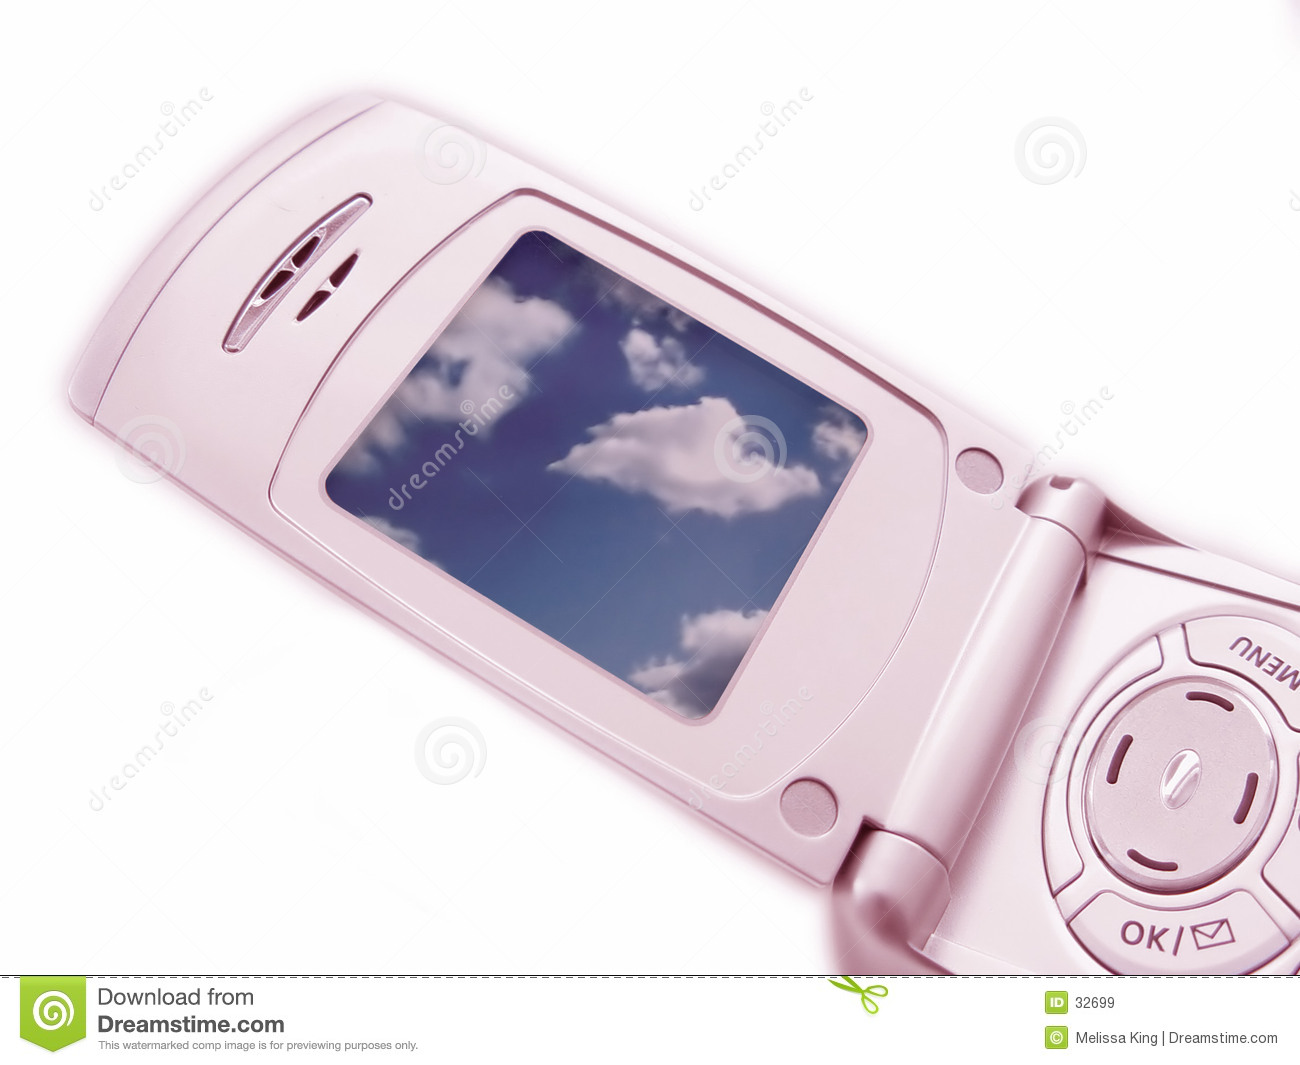 Closeup of Camera Phone - Pink